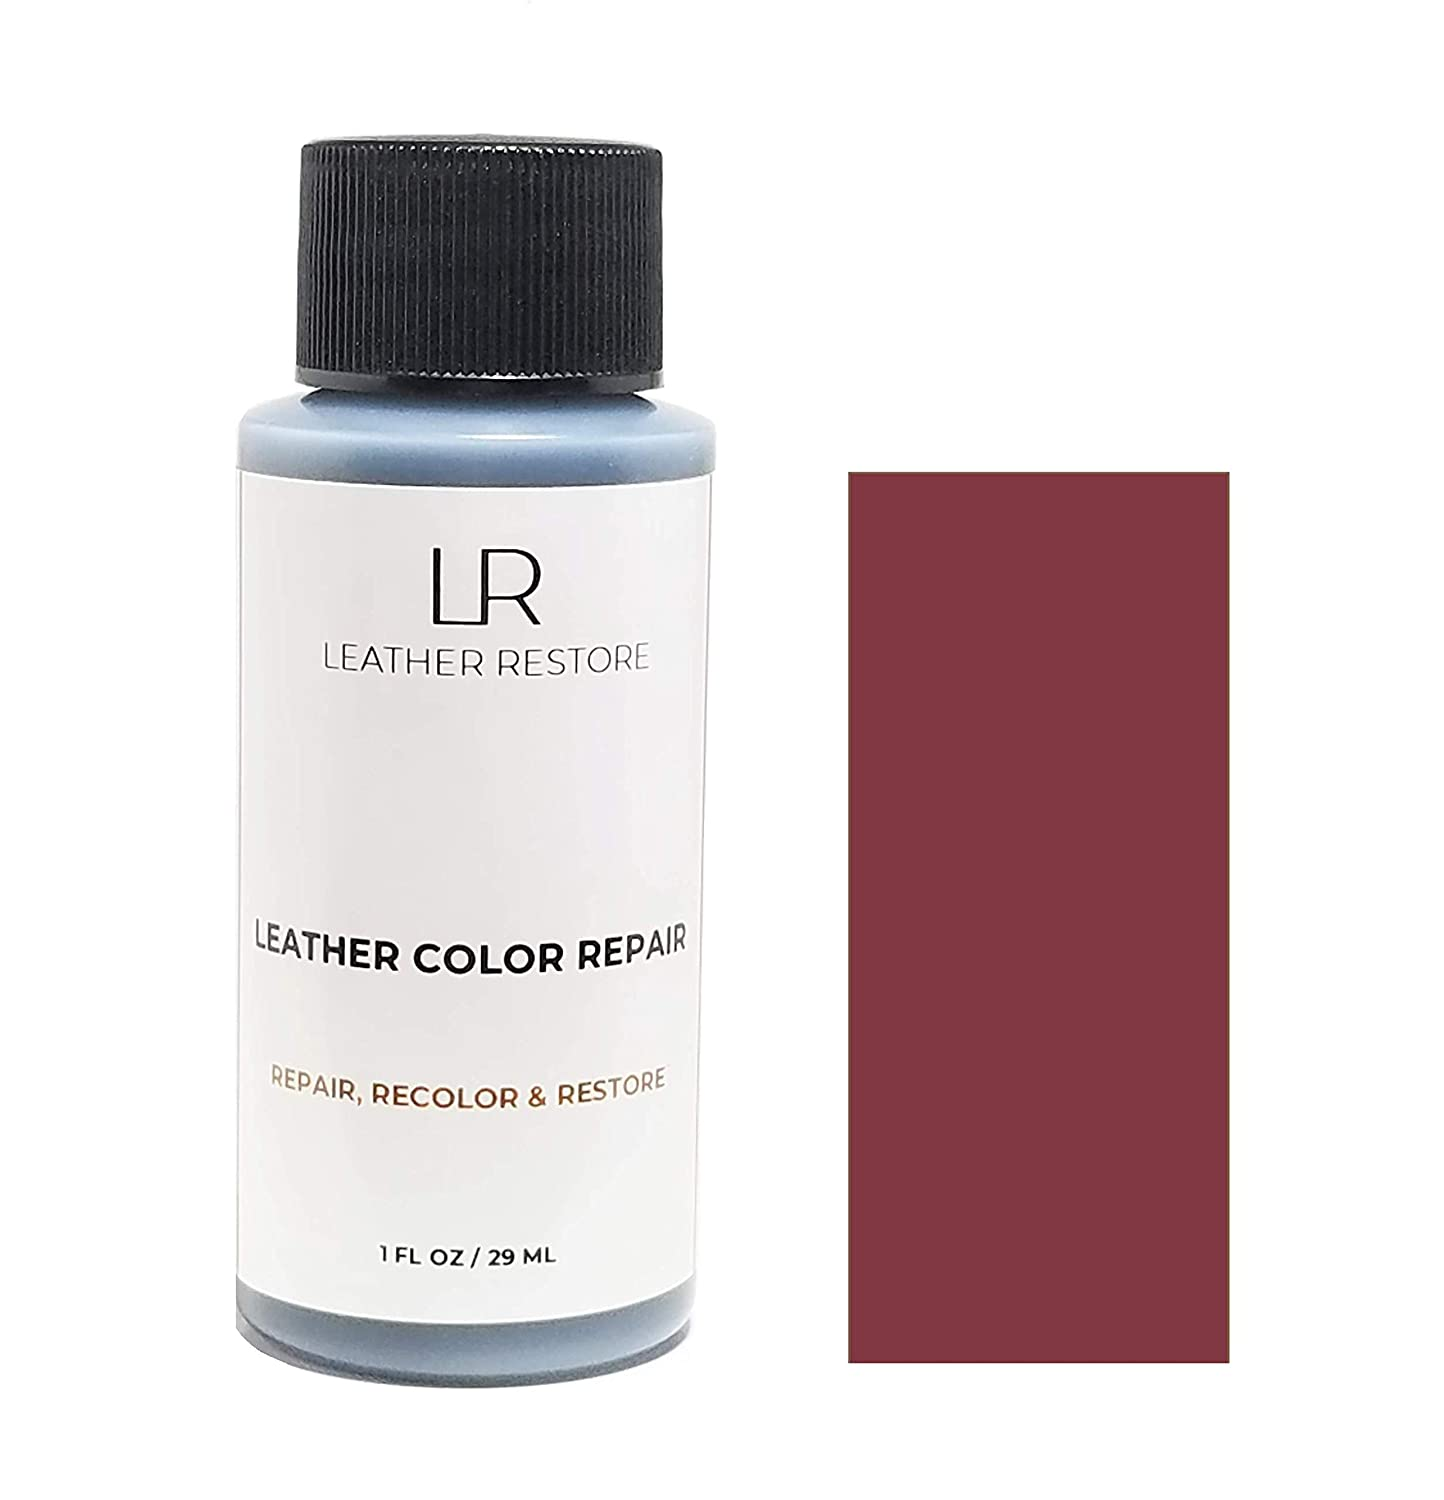 Leather Restore Leather Color Repair, Burgundy 1 OZ - Repair, Recolor and Restore Couch, Furniture, Auto Interior, Car Seats, Vinyl and Shoes